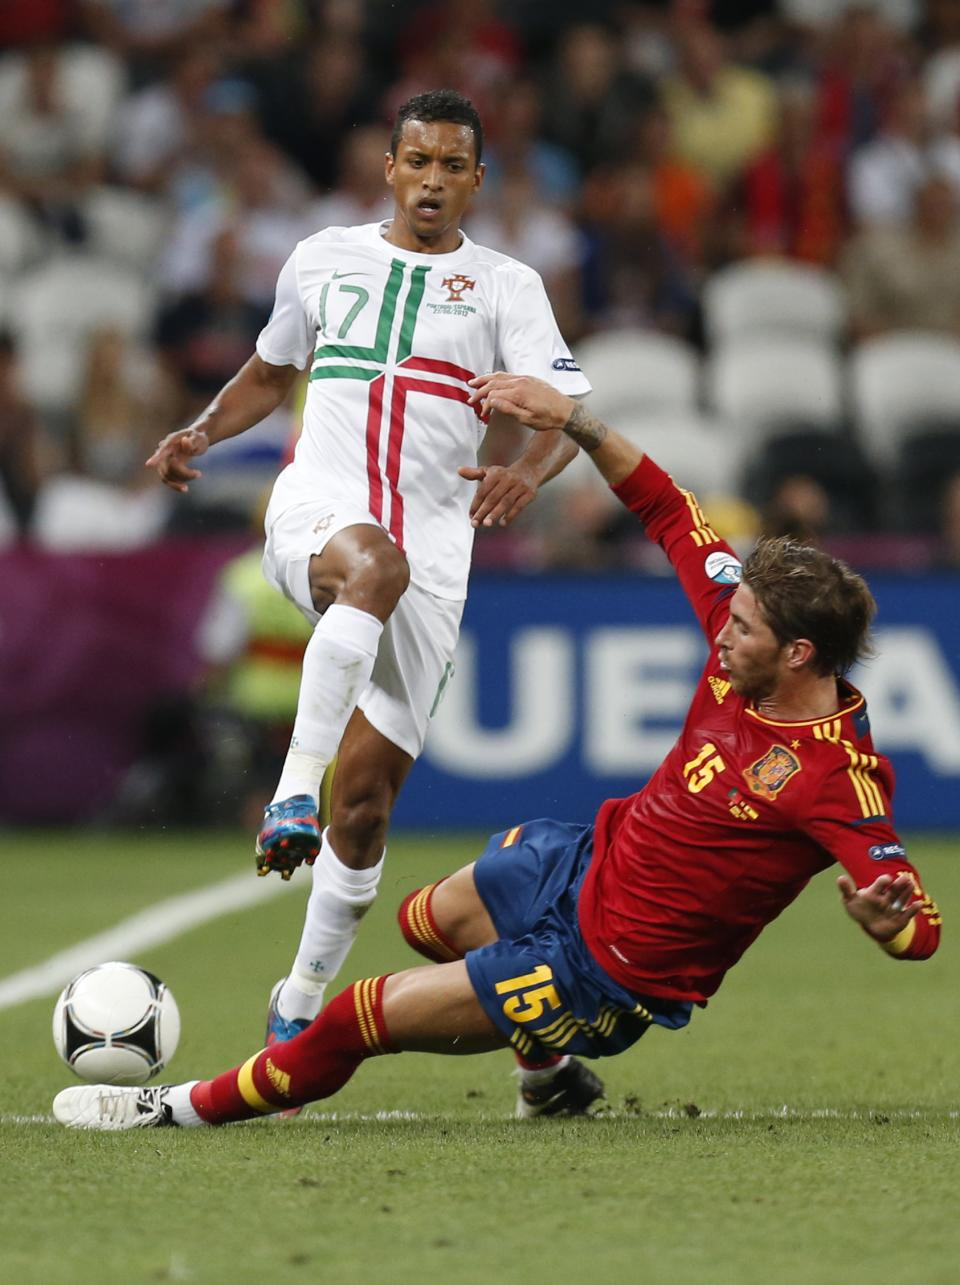 Portugal's Nani is tackled by Spain's Sergio Ramos during the Euro 2012 soccer championship semifinal match between Spain and Portugal in Donetsk, Ukraine, Wednesday, June 27, 2012. (AP Photo/Jon Super)